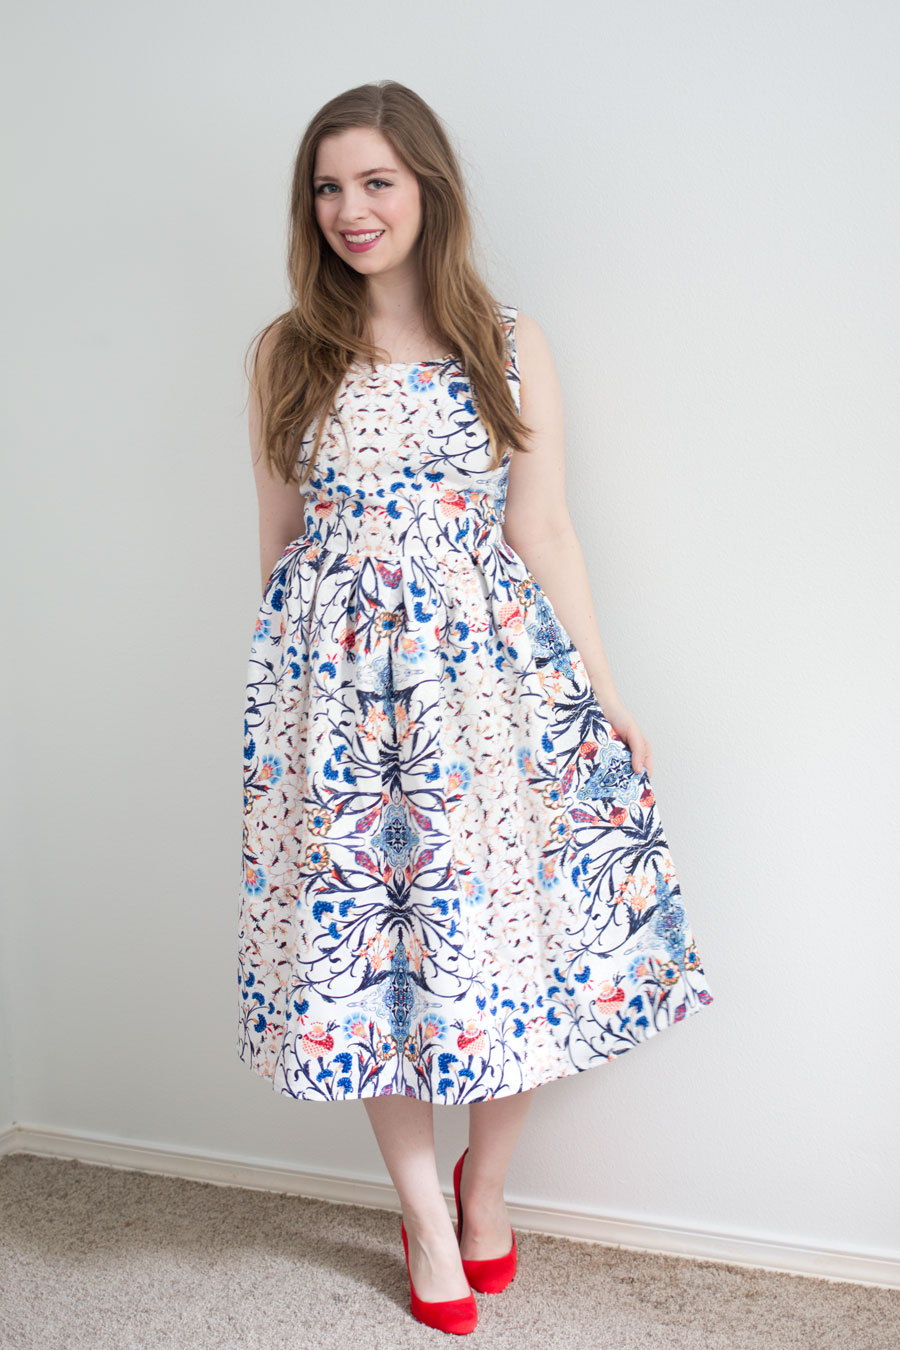 Daily Look Elite Box Review: Glamorous Floral Print White Prom Dress / hellorigby seattle fashion blog